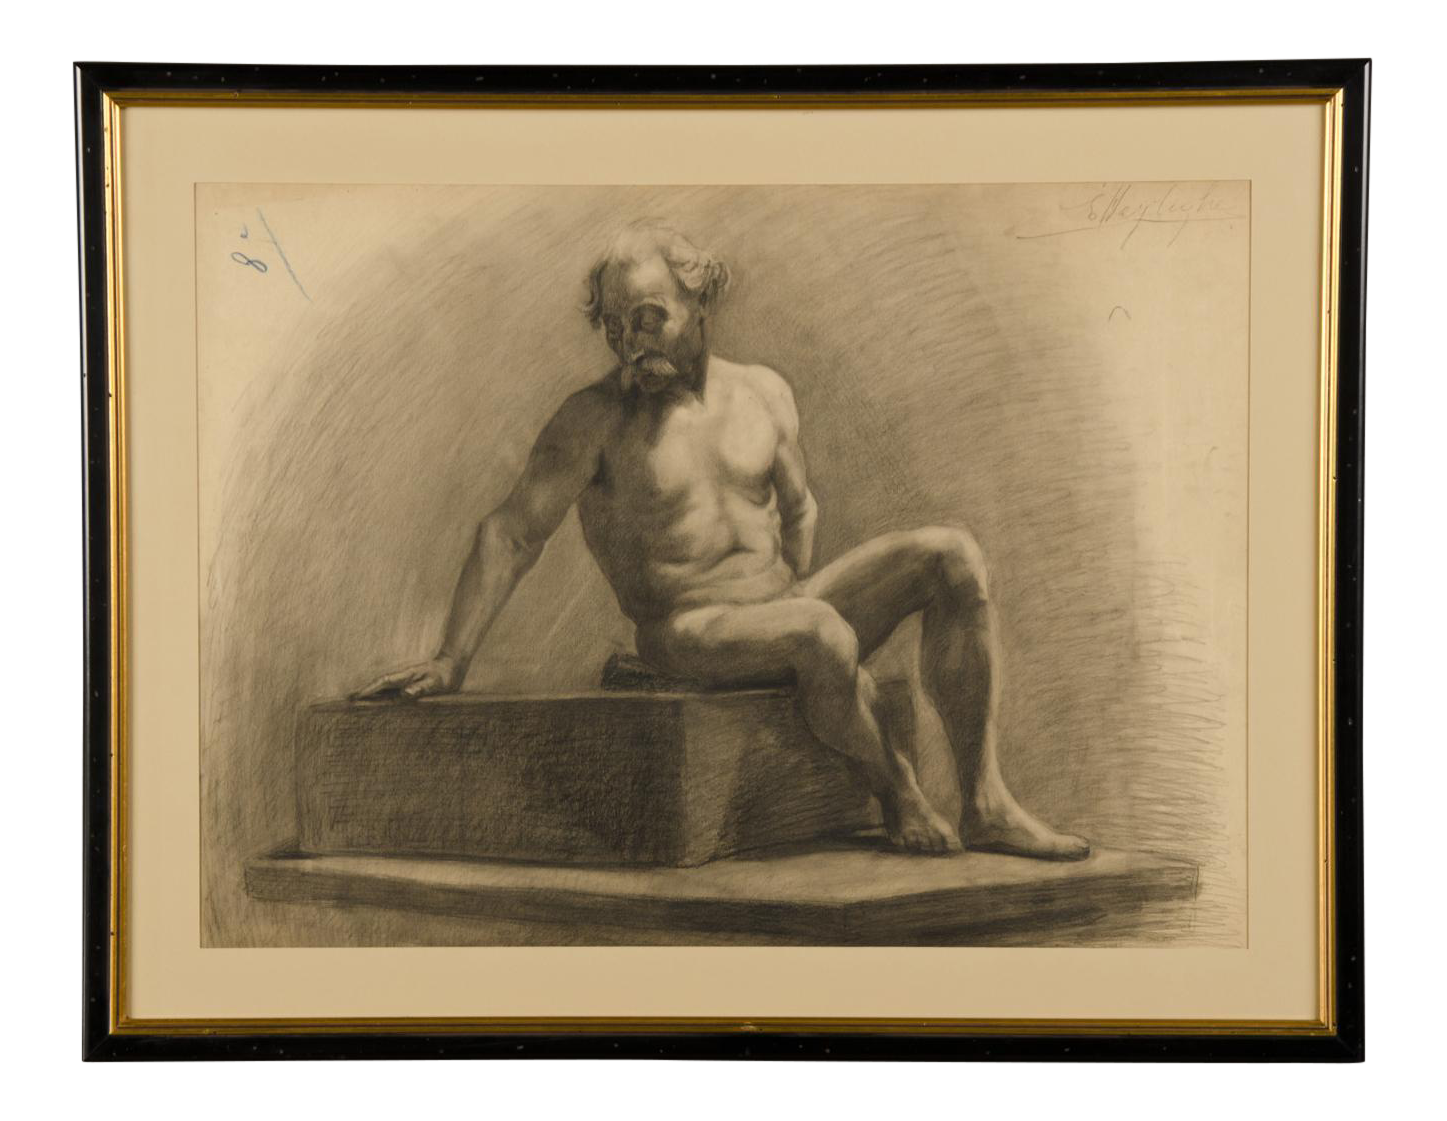 Sculptural drawing figure. Exceptional french academy of